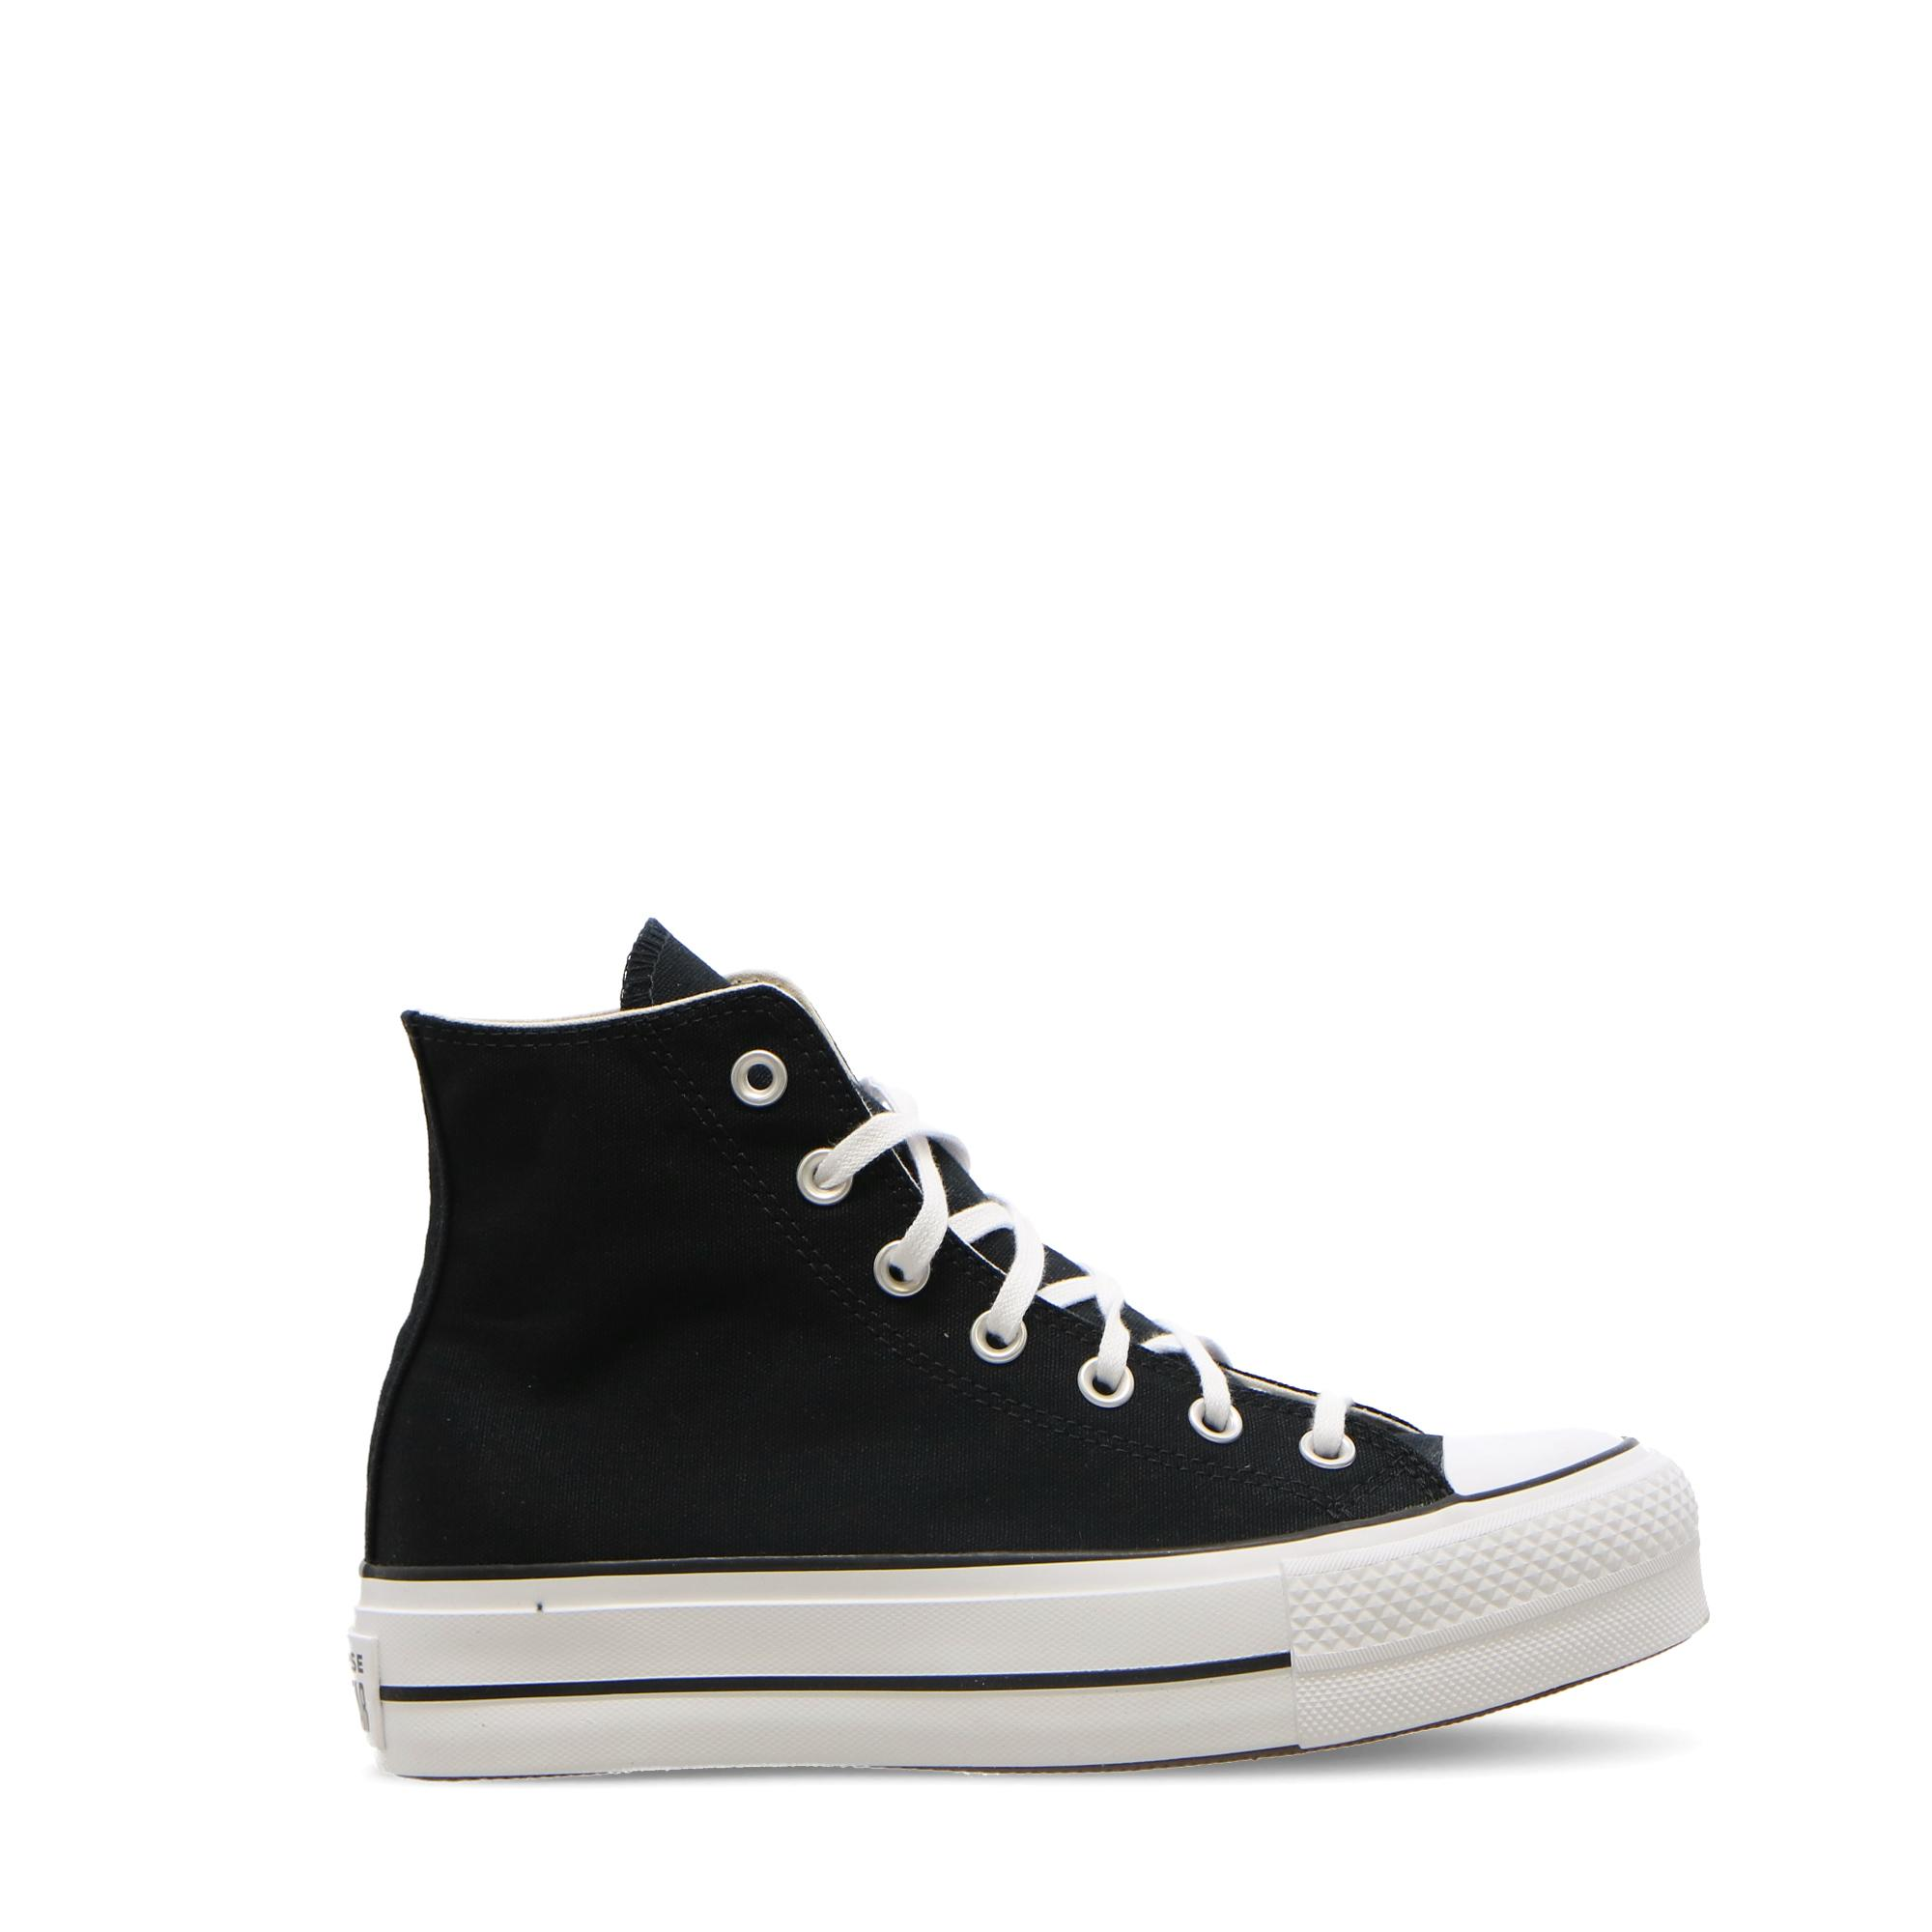 Converse Chuck Taylor All Star Lift Hi Black